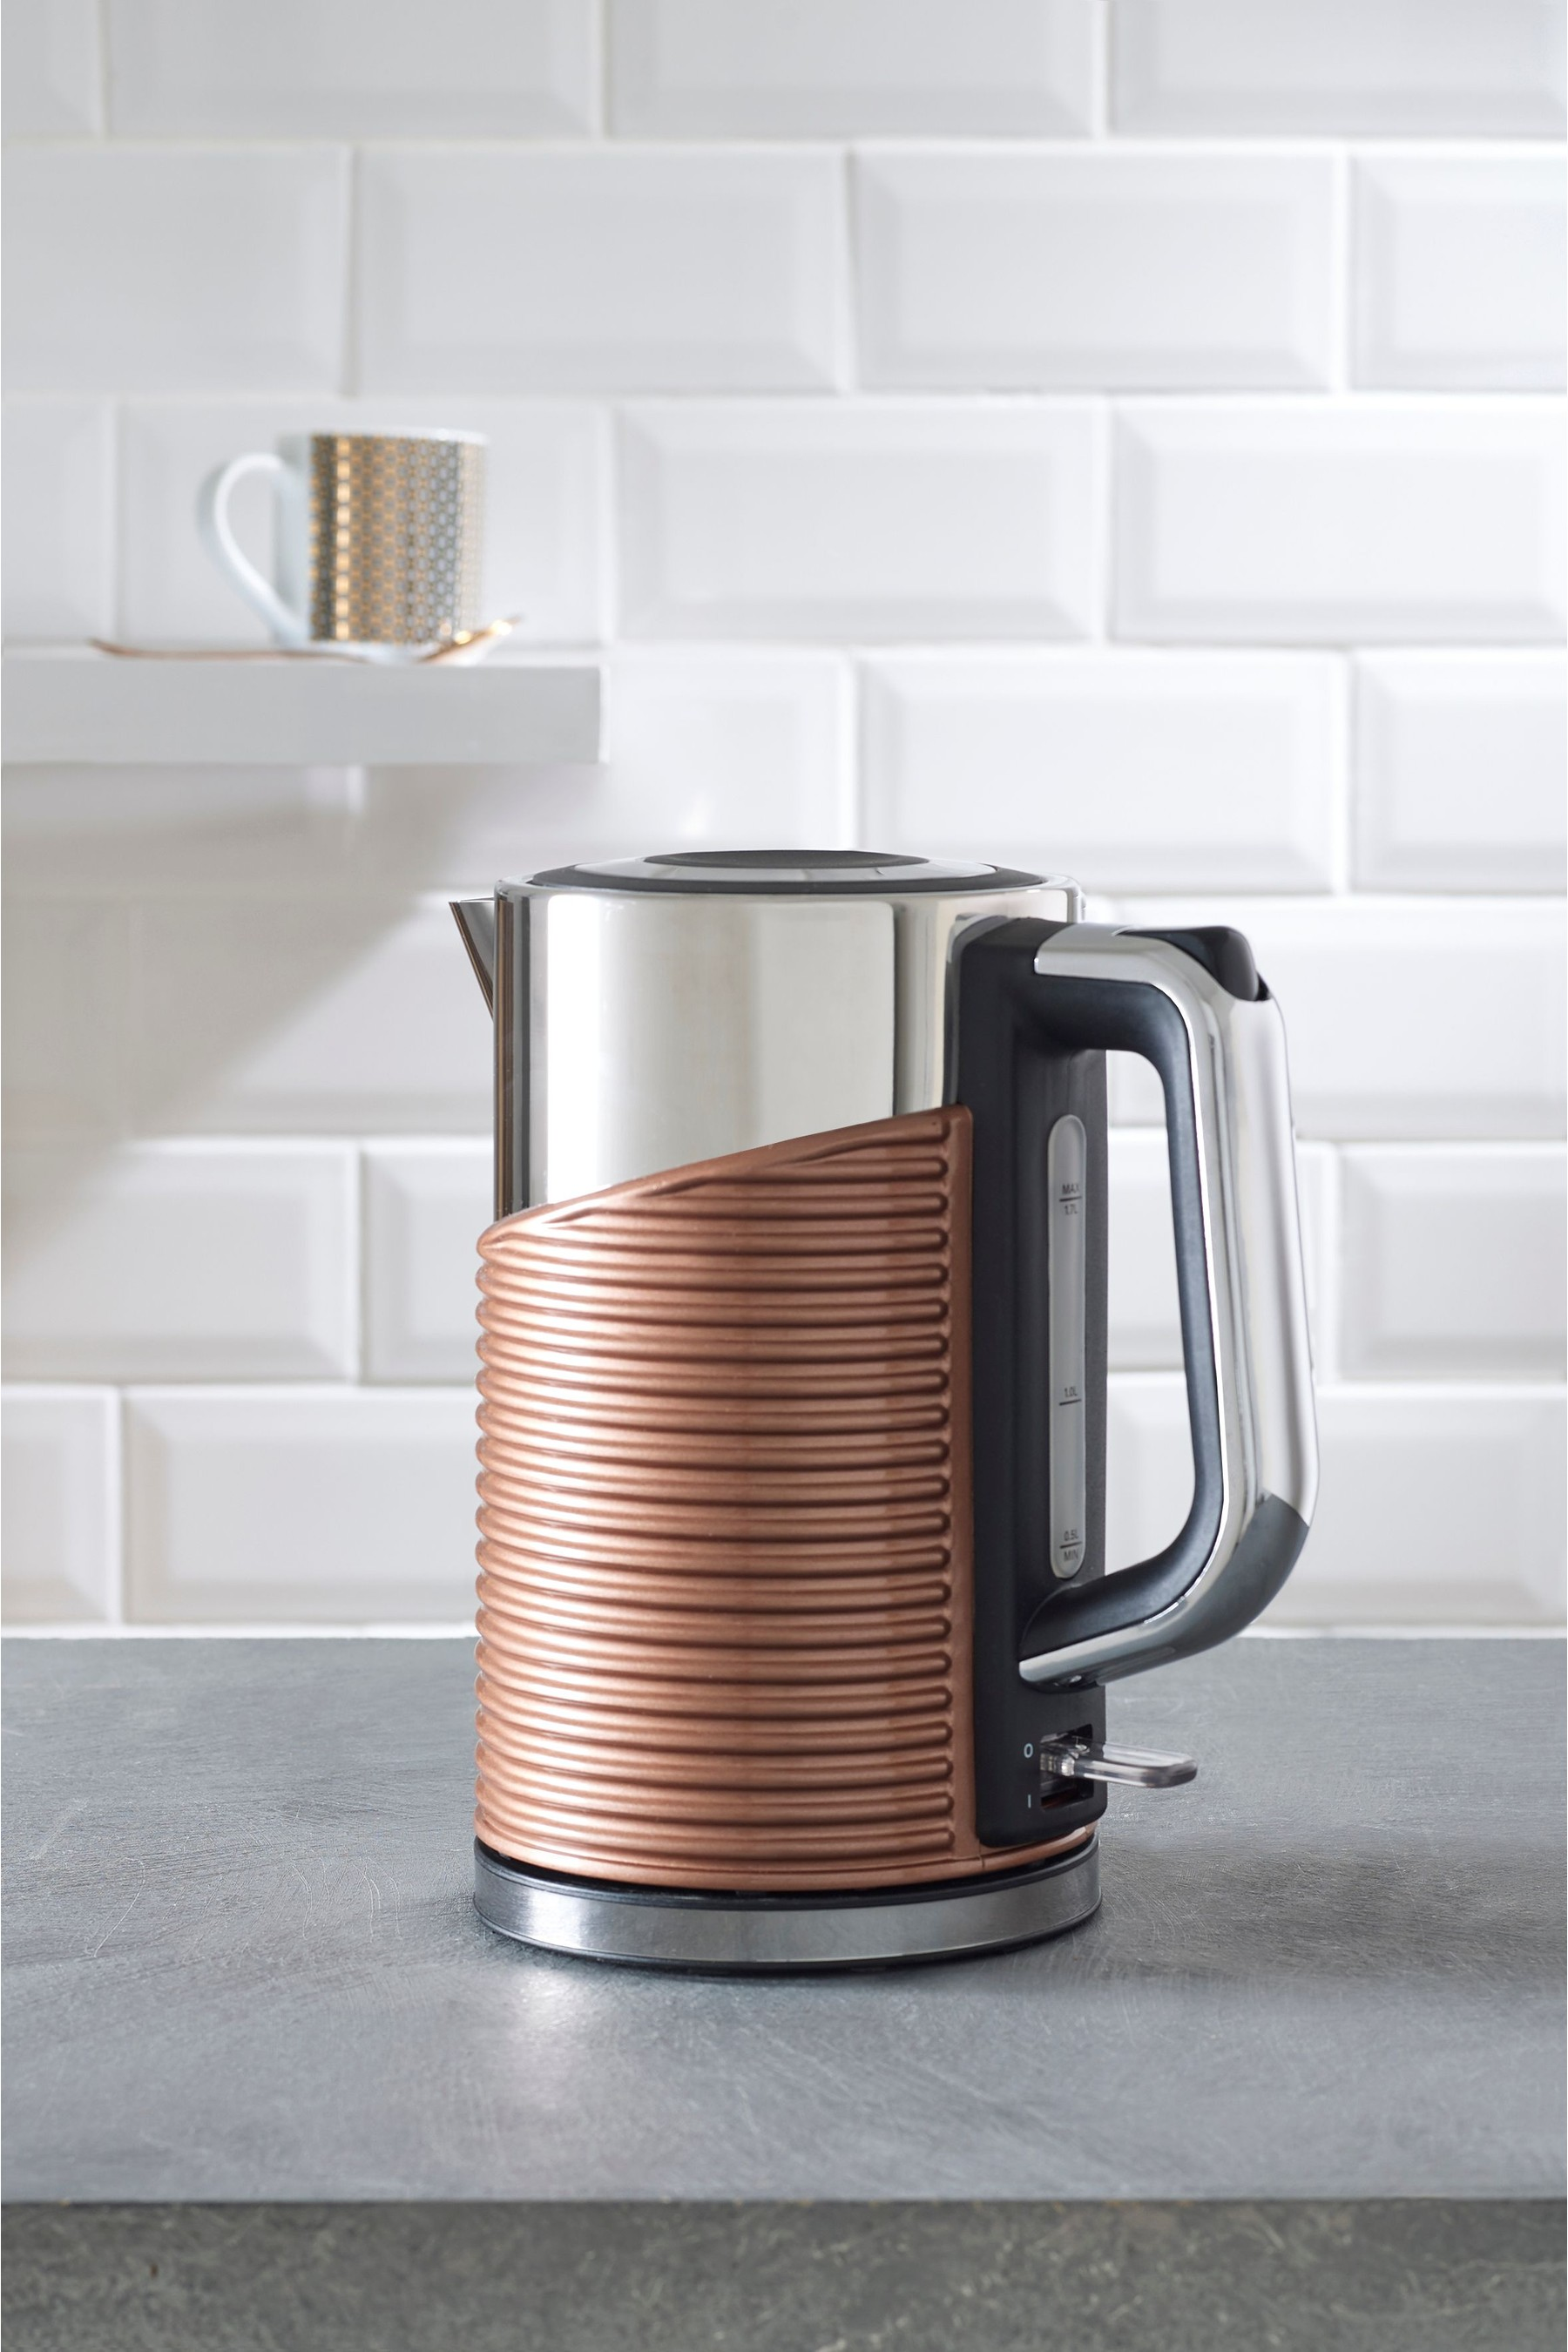 Next Kettle Copper in 2020 Kettle, Kettle and toaster